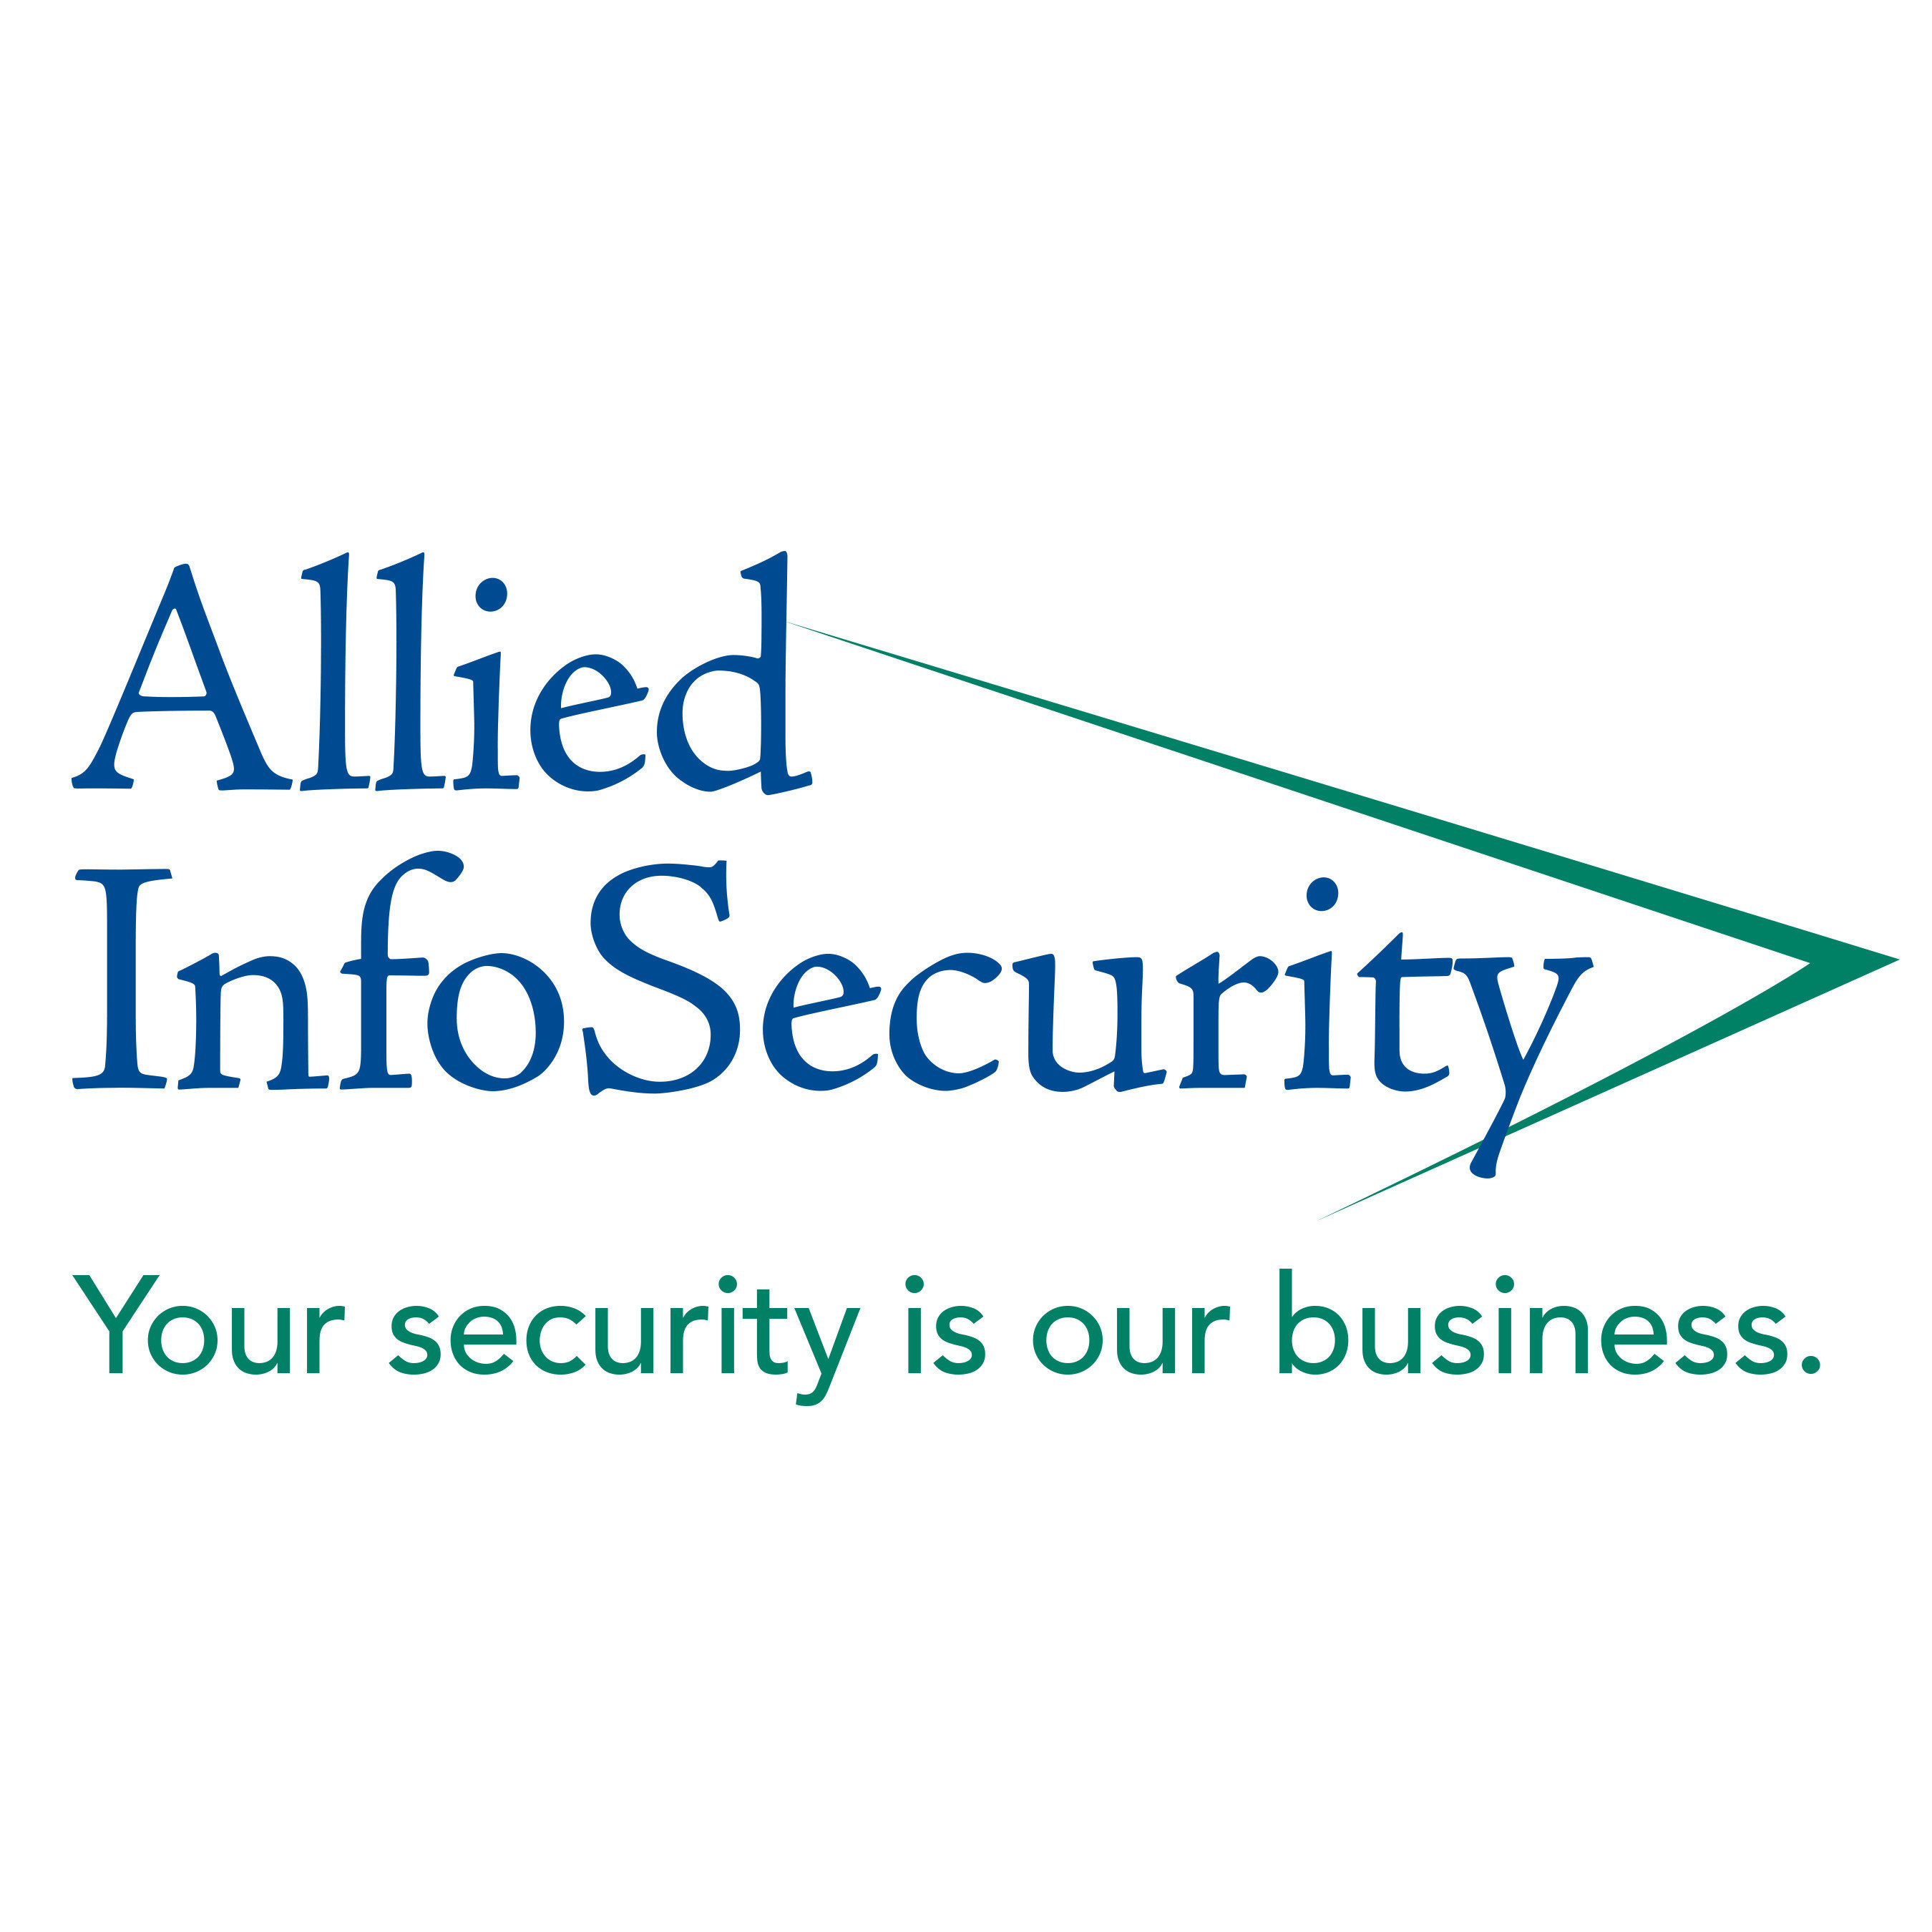 Delta Risk LLC, a global provider of cybersecurity and risk management services, announced today that it has completed the acquisition of Allied InfoSecurity, a security consulting services firm. The acquisition follows recent announcements of new additions to the Delta Risk leadership team as the company continues to grow its portfolio of services and expand Federal and commercial market share.